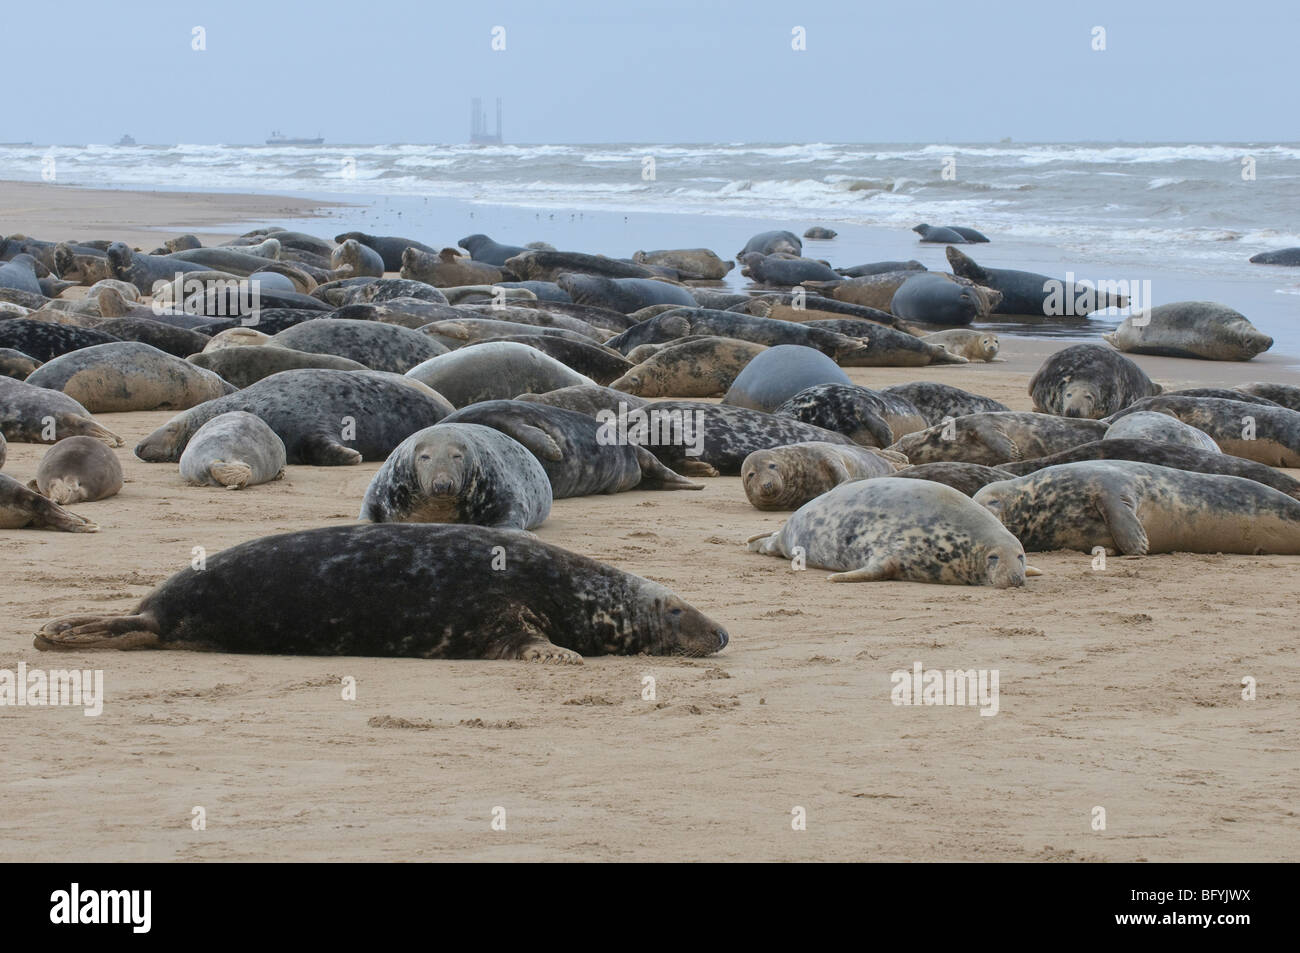 Atlantic grey seal Halichoerus grypus breeding colony on the Humber estuary at Donna Nook Lincolnshire. - Stock Image